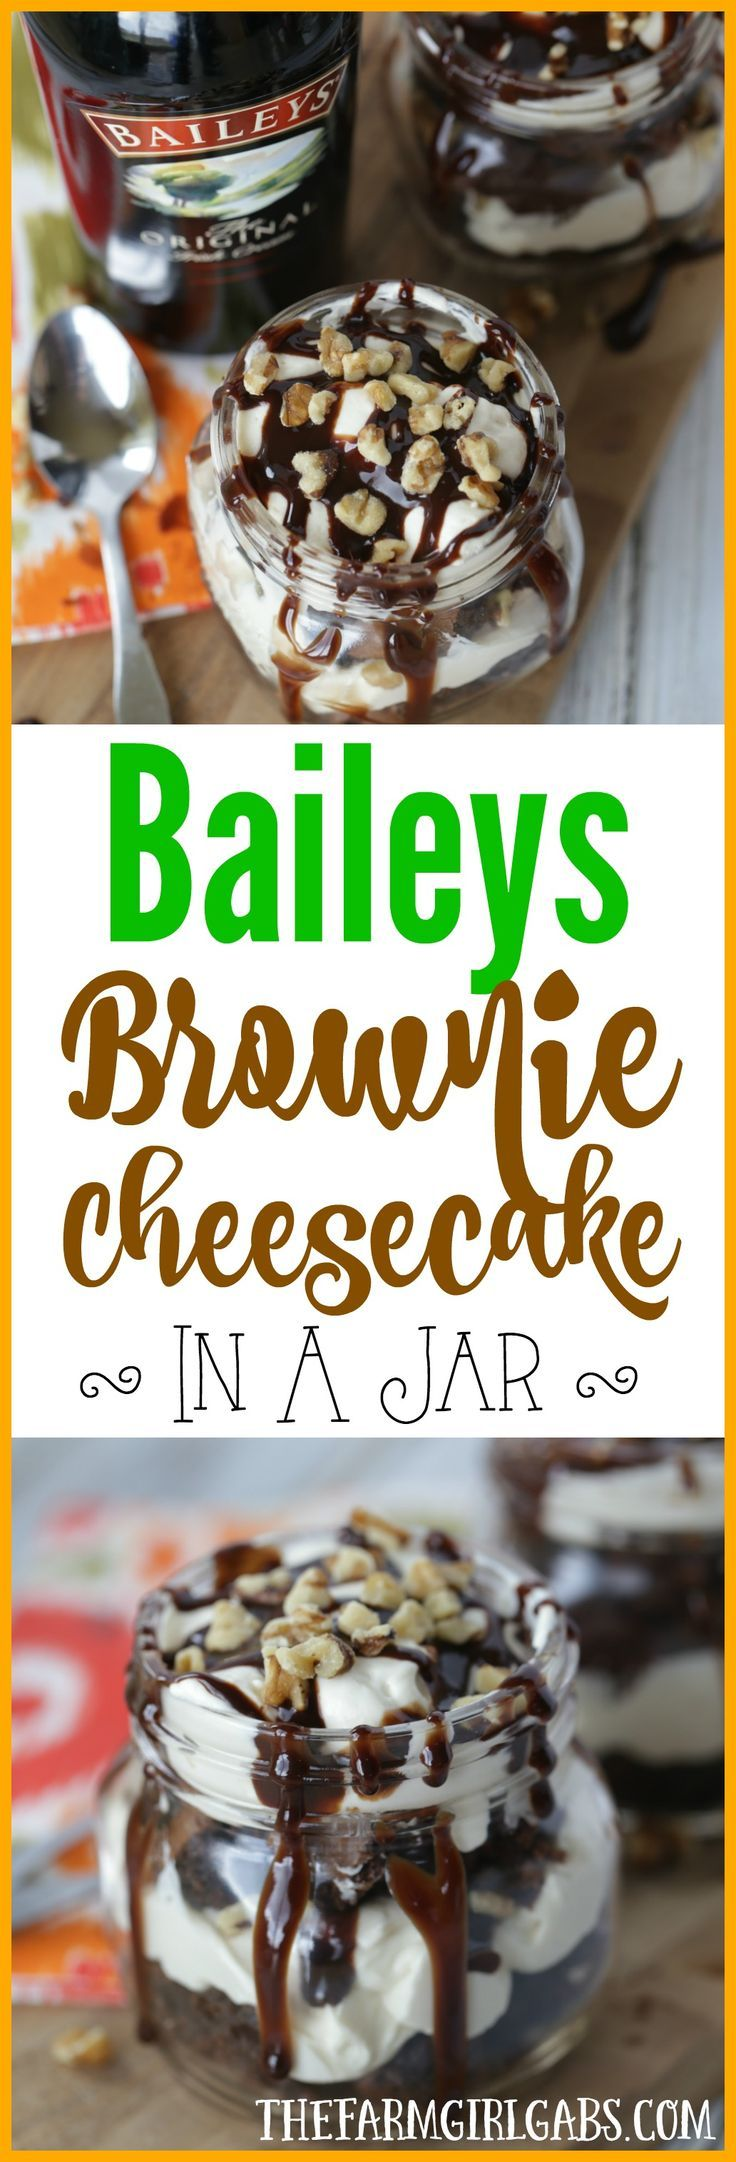 Celebrate St. Patrick's Day with a delicious no bake Baileys Brownie Cheesecake In A Jar. This recipe is decadent. The brownie and Baileys Irish Cream pair so well together. You can't go wrong with a Baileys Irish Cream and brownie dessert!